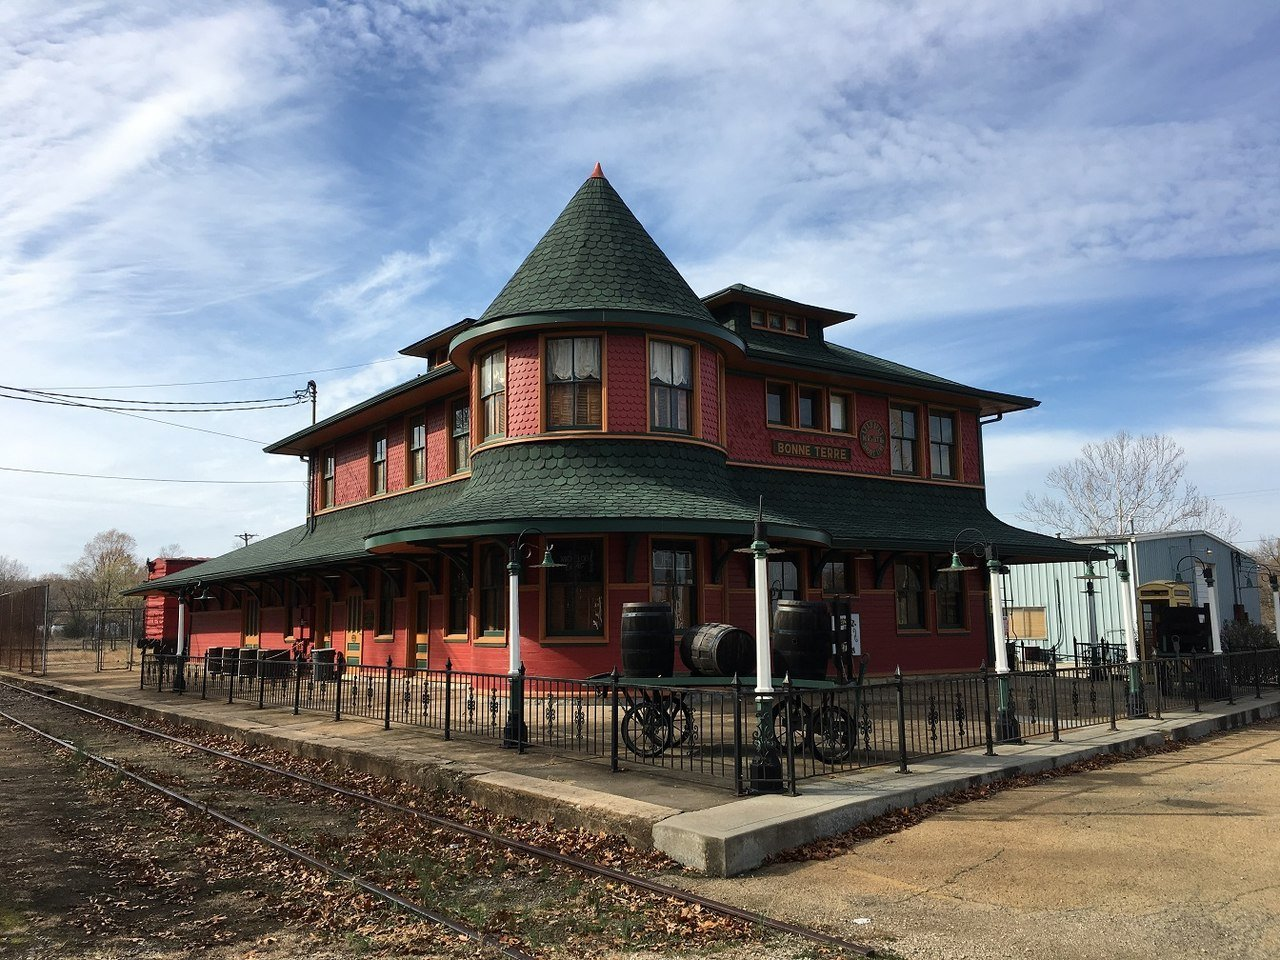 The Bonne Terre Depot is a historic train station built in 1909. It is now a bed and breakfast hotel.